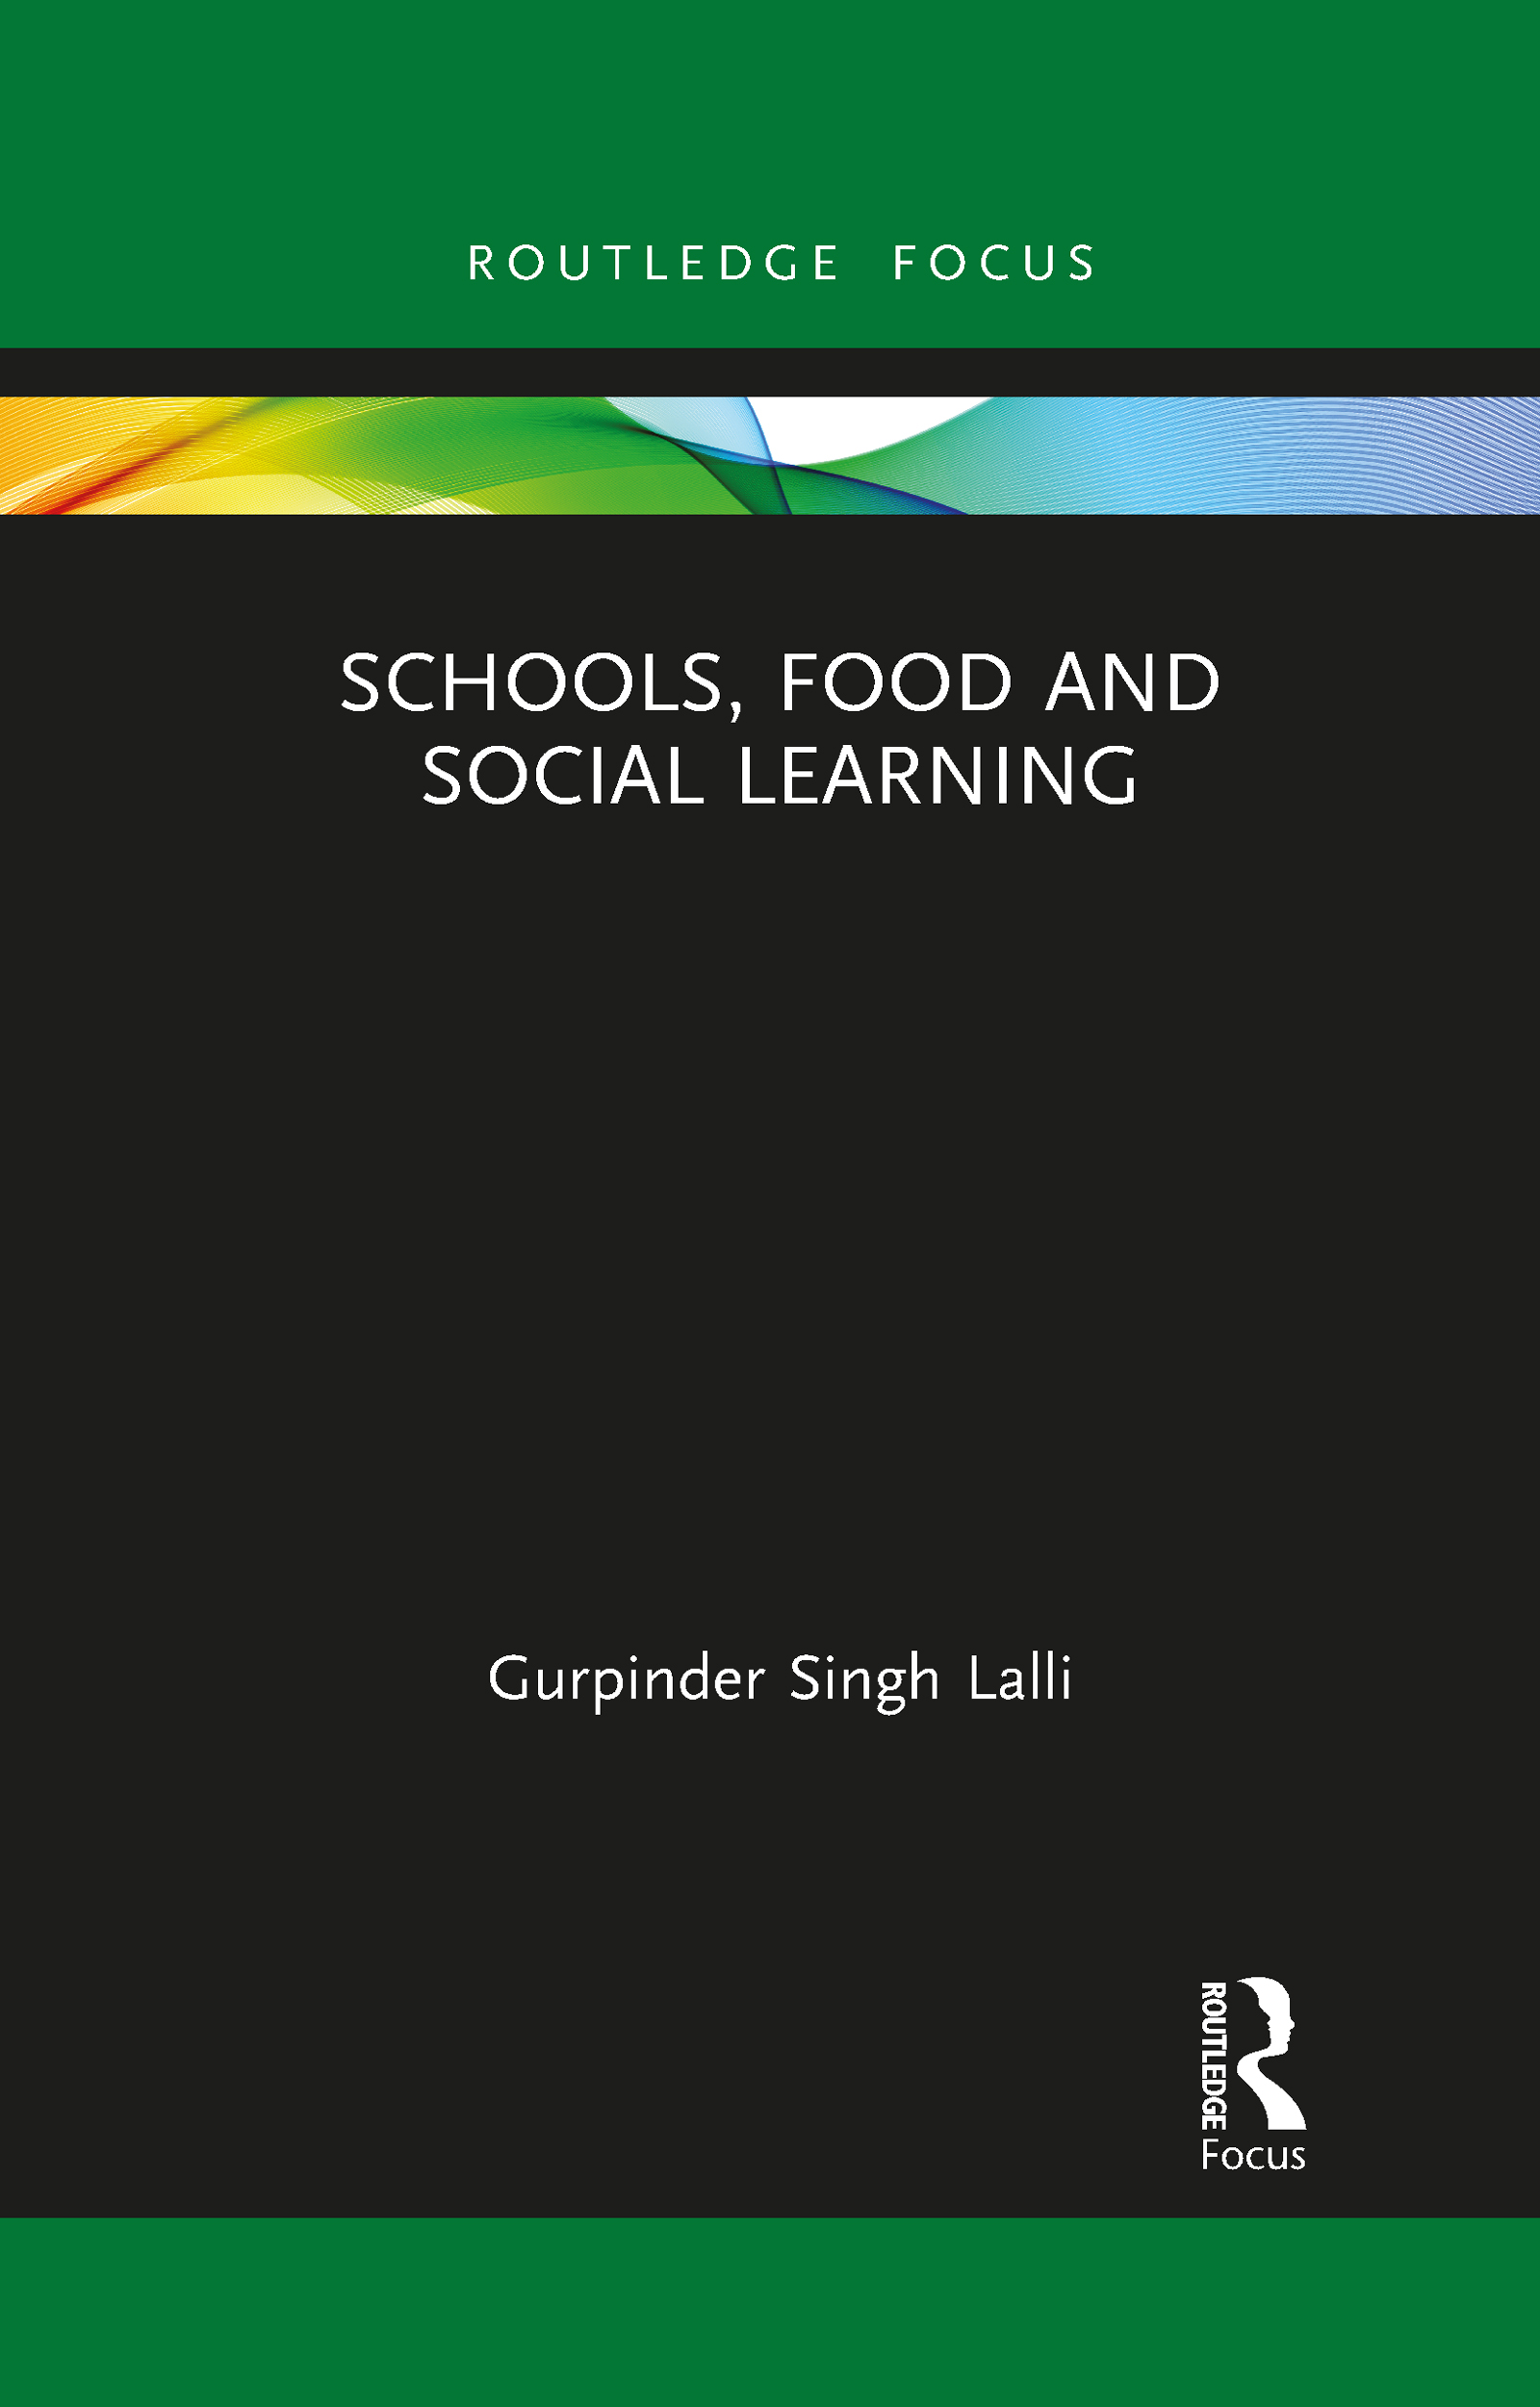 Schools, Food and Social Learning